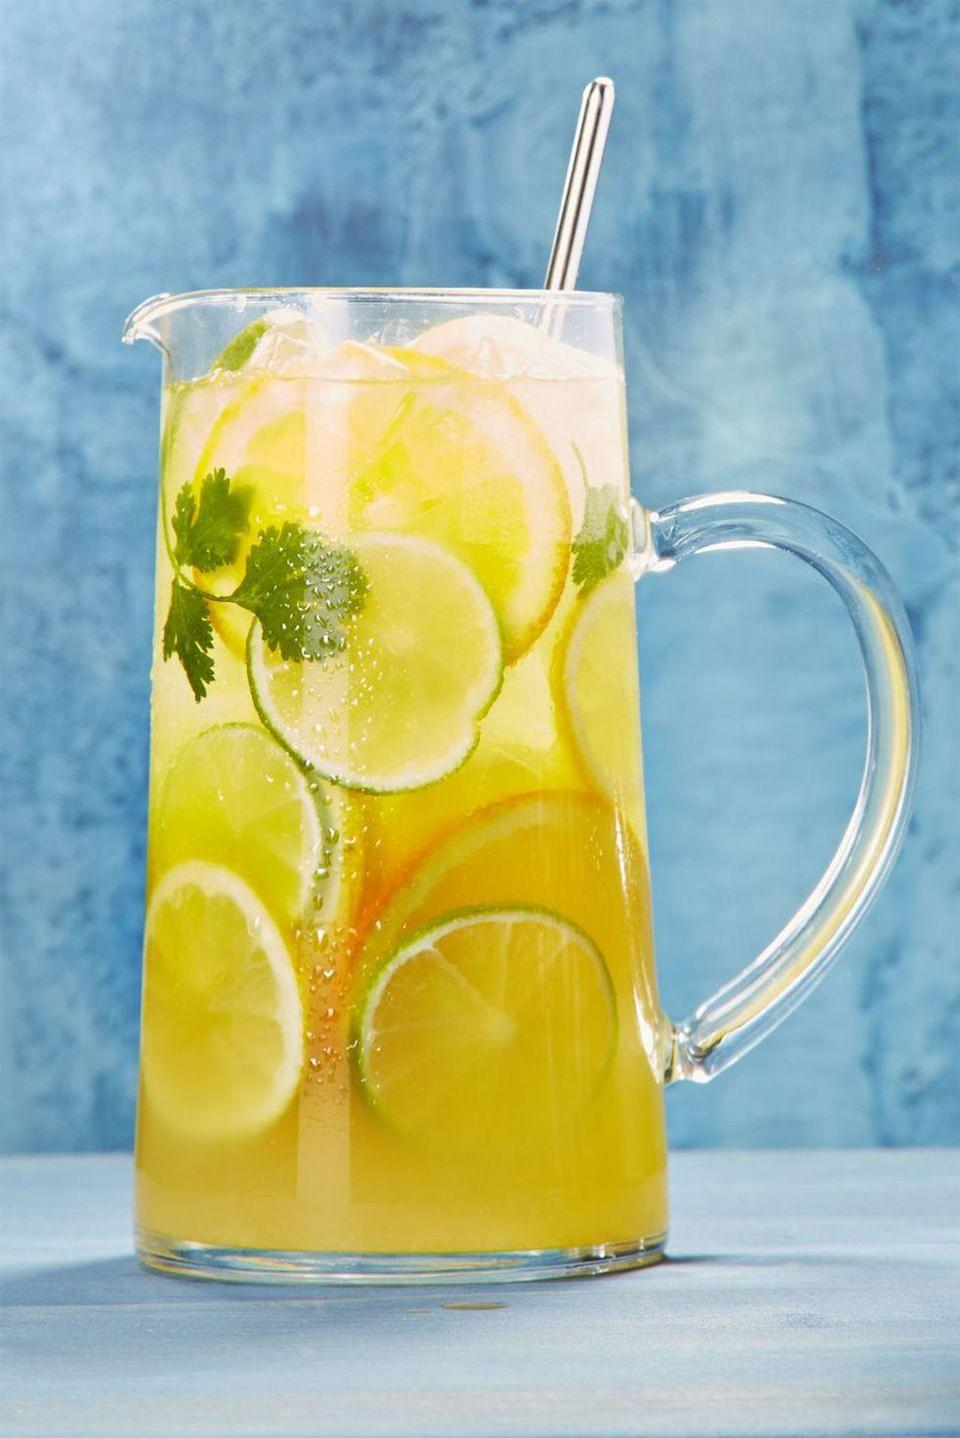 """<p>Make your Super Bowl a bonafide Sunday Funday with this margarita-sangria hybrid that includes tequila, triple sec, and white wine. </p><p><a href=""""https://www.goodhousekeeping.com/food-recipes/a44204/citrusy-white-sangria-margarita-recipe/"""" rel=""""nofollow noopener"""" target=""""_blank"""" data-ylk=""""slk:Get the recipe for Citrusy White Sangria Margarita »"""" class=""""link rapid-noclick-resp""""><em>Get the recipe for Citrusy White Sangria Margarita »</em></a></p>"""